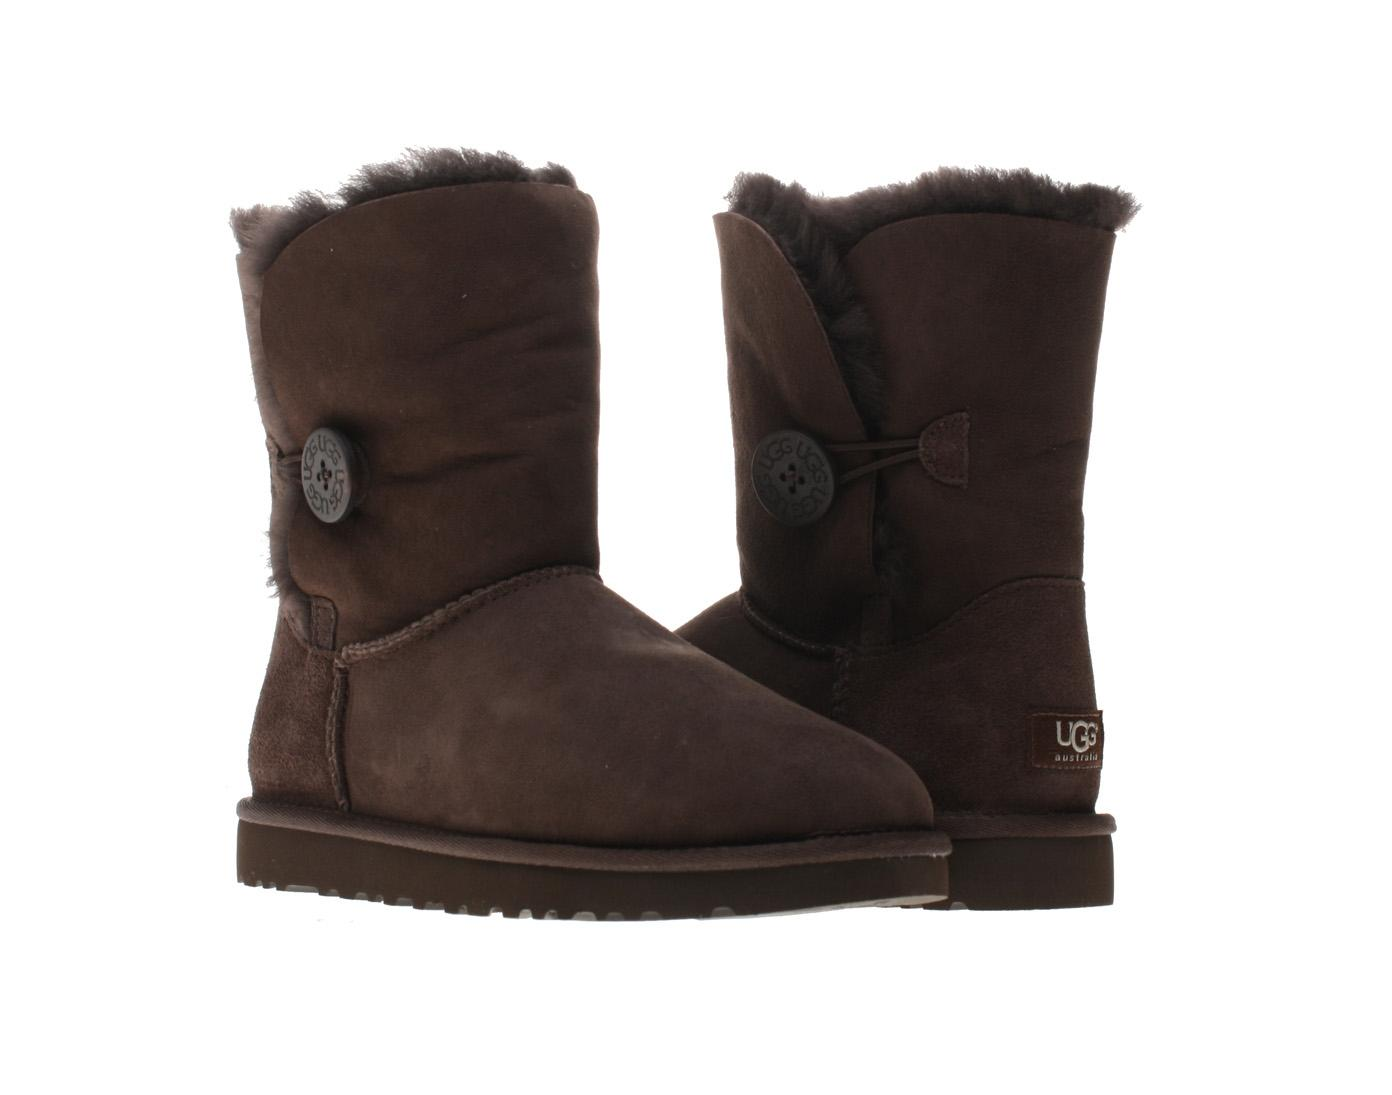 4aef1a1a3f816 ... new arrivals ugg australia bailey button 5808 chocolate boots 07d7c  7d1f4 ...